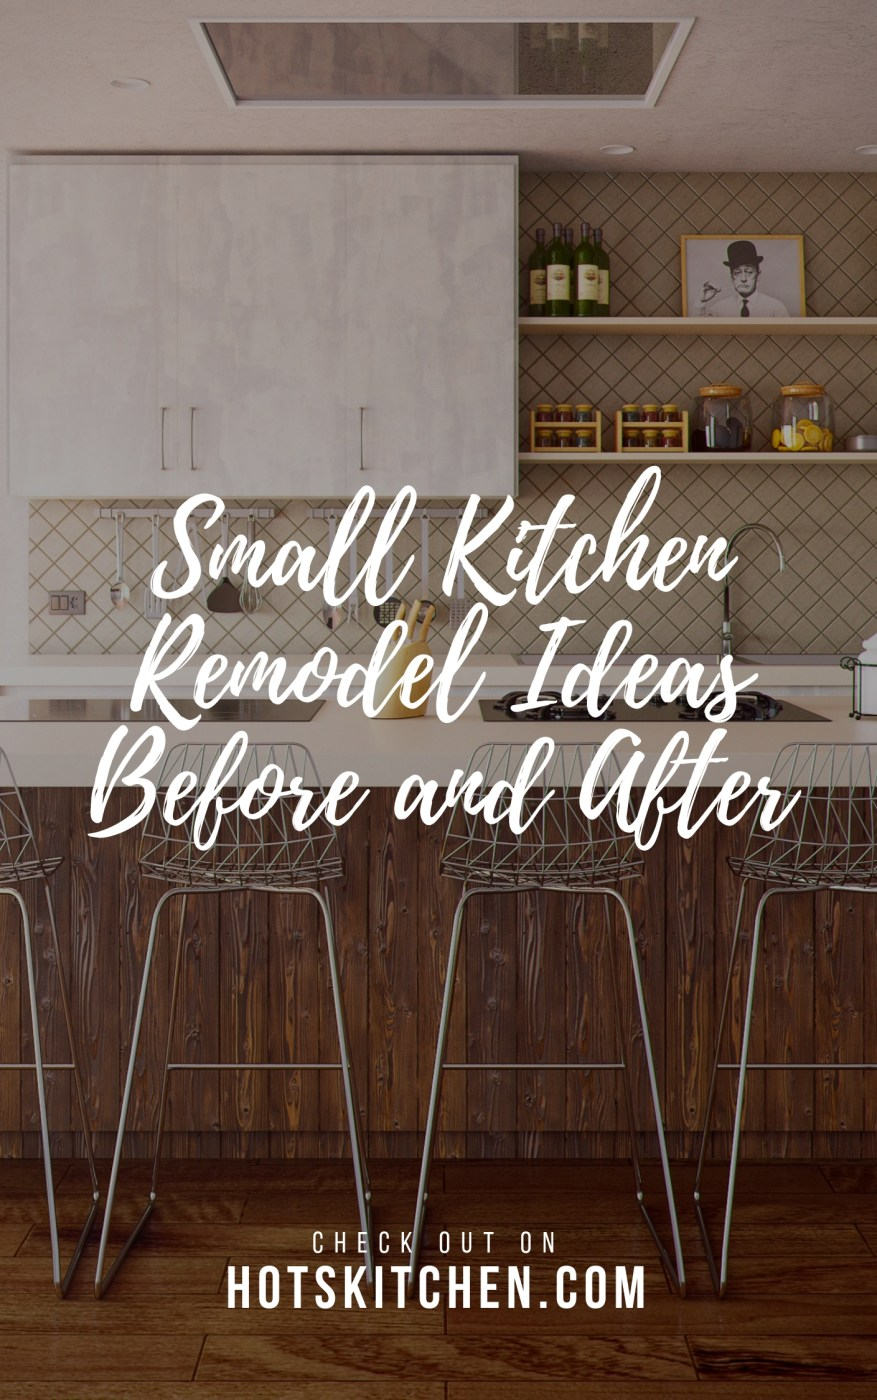 Small Kitchen Remodel Ideas Before and After